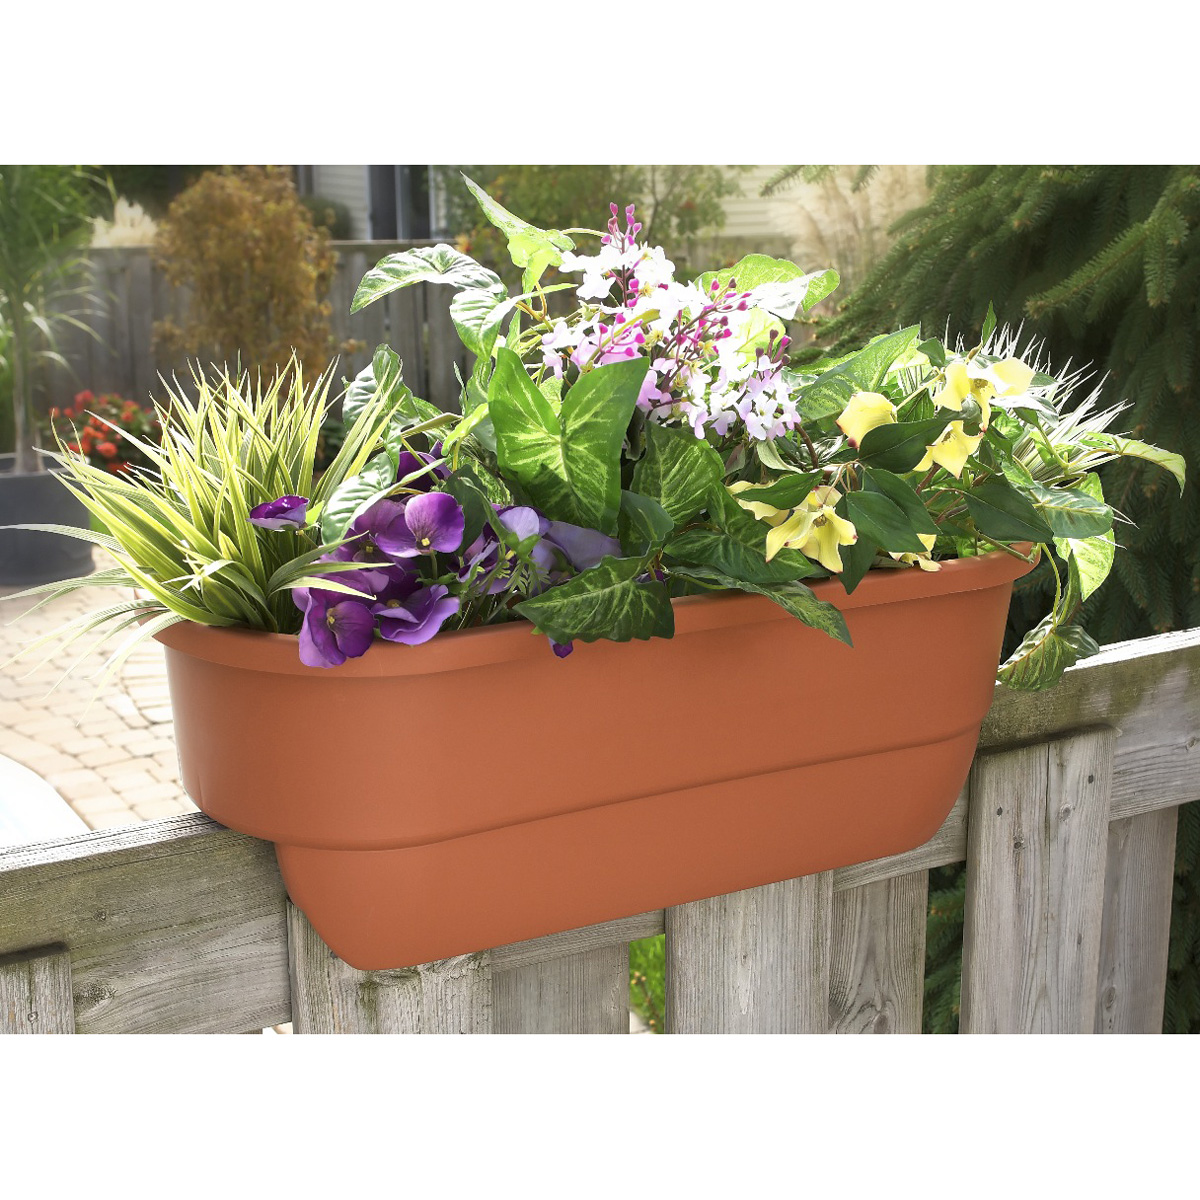 Walmart Planter Box | Deck Planter Ideas | Deck Rail Planters